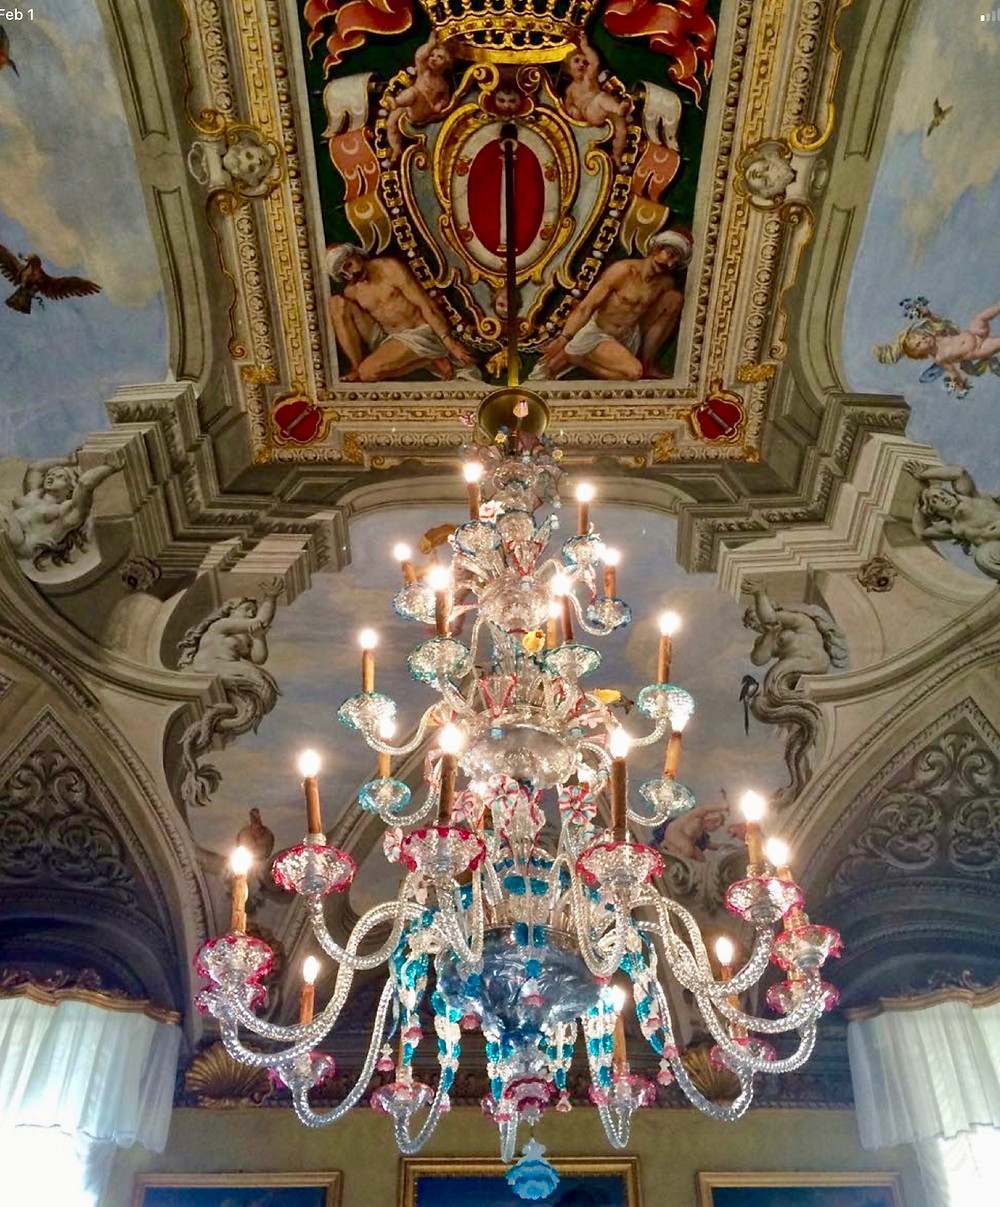 Murano chandelier in the Great Hall